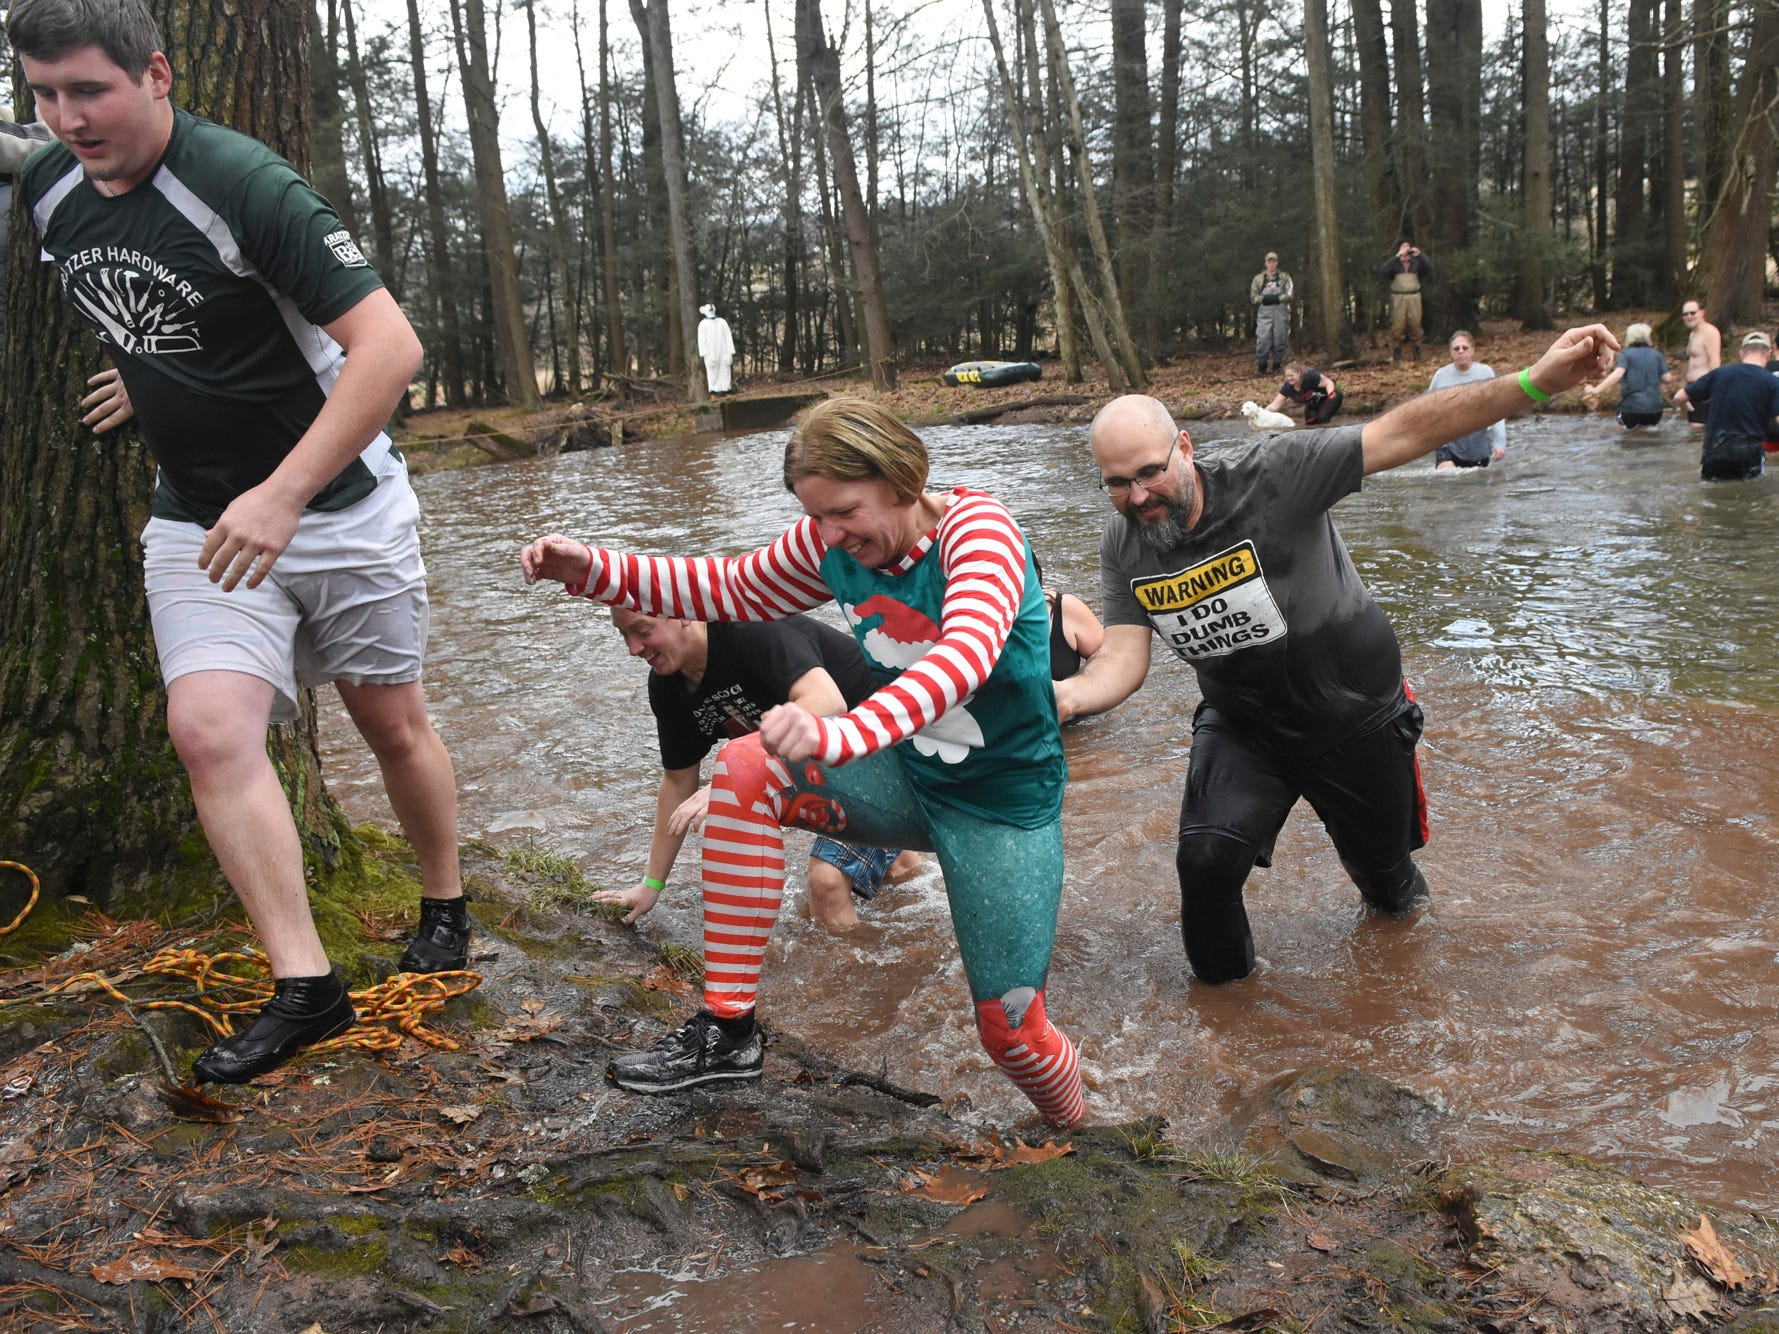 Lisa Lasco, center, and Jason Smith make their way out of Pine Creek during the 10th annual Pine Creek Polar Bear Plunge in Valley View Park in Valley View, Pa. The event benefits Pine Creek Trout Nursery.